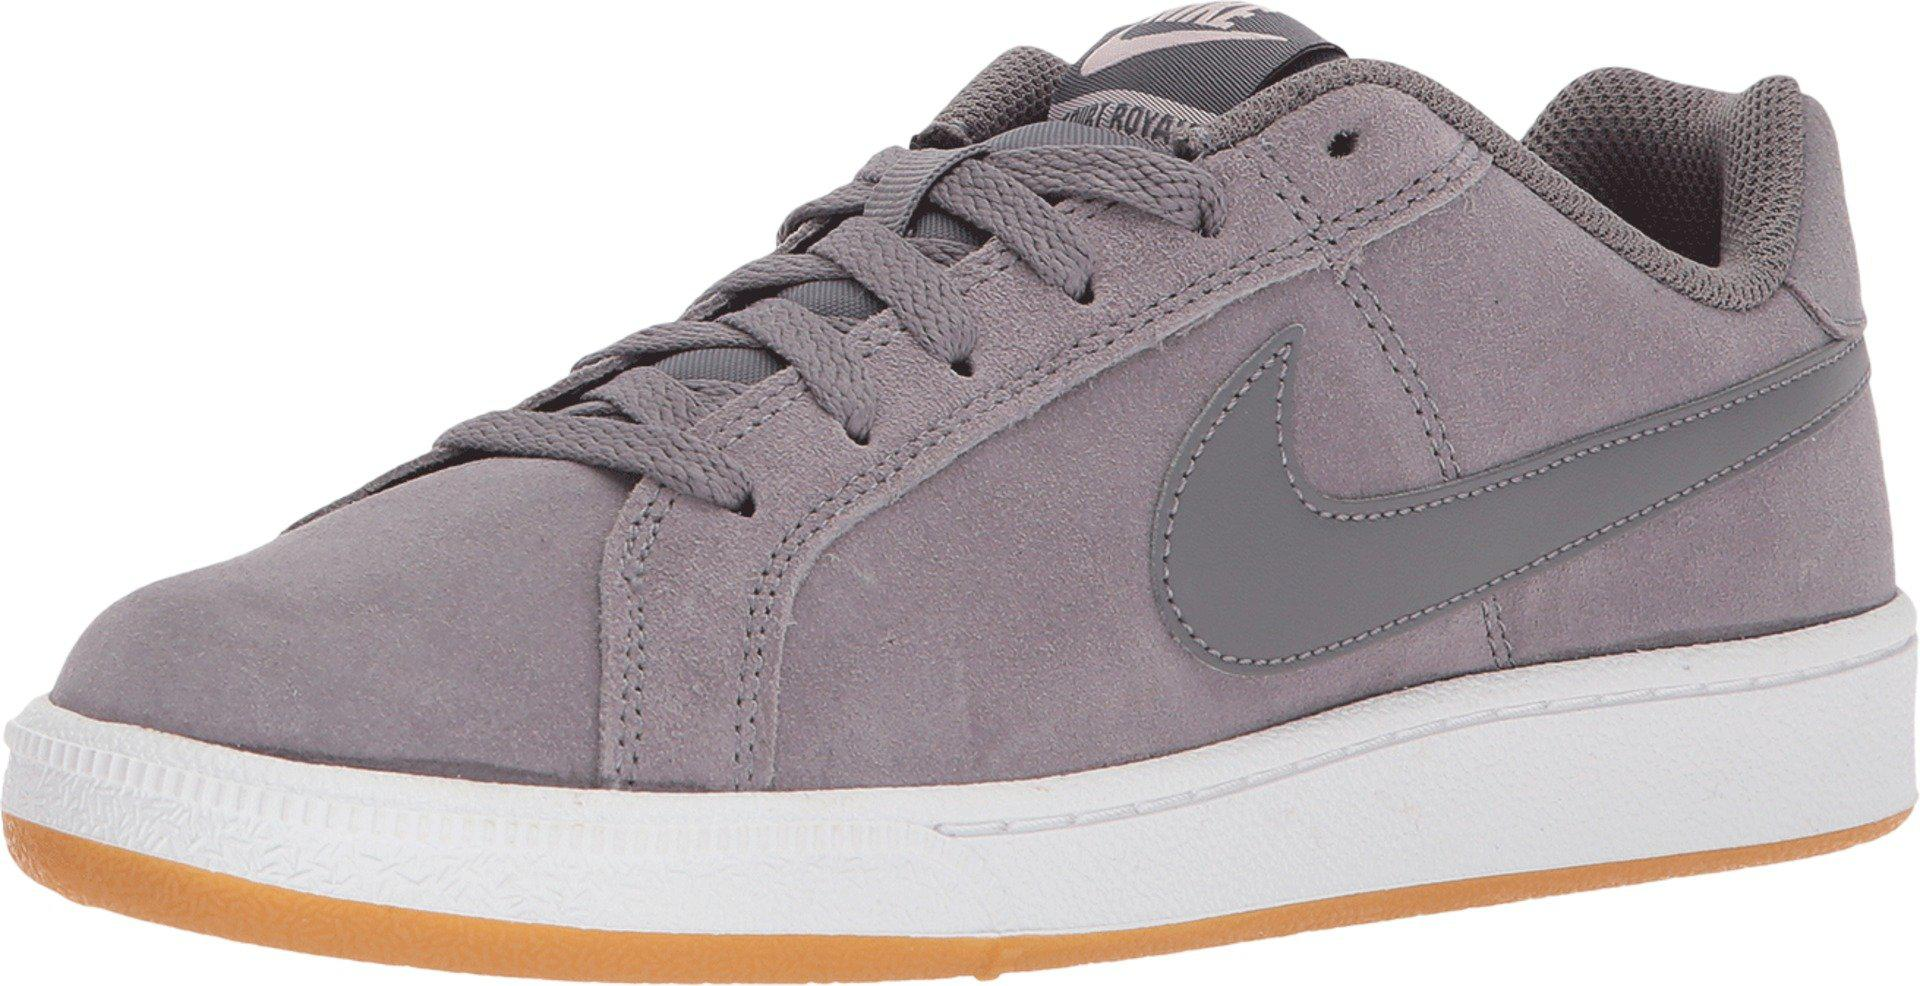 c9827ac002e1 Lyst - Nike Court Royale Suede for Men